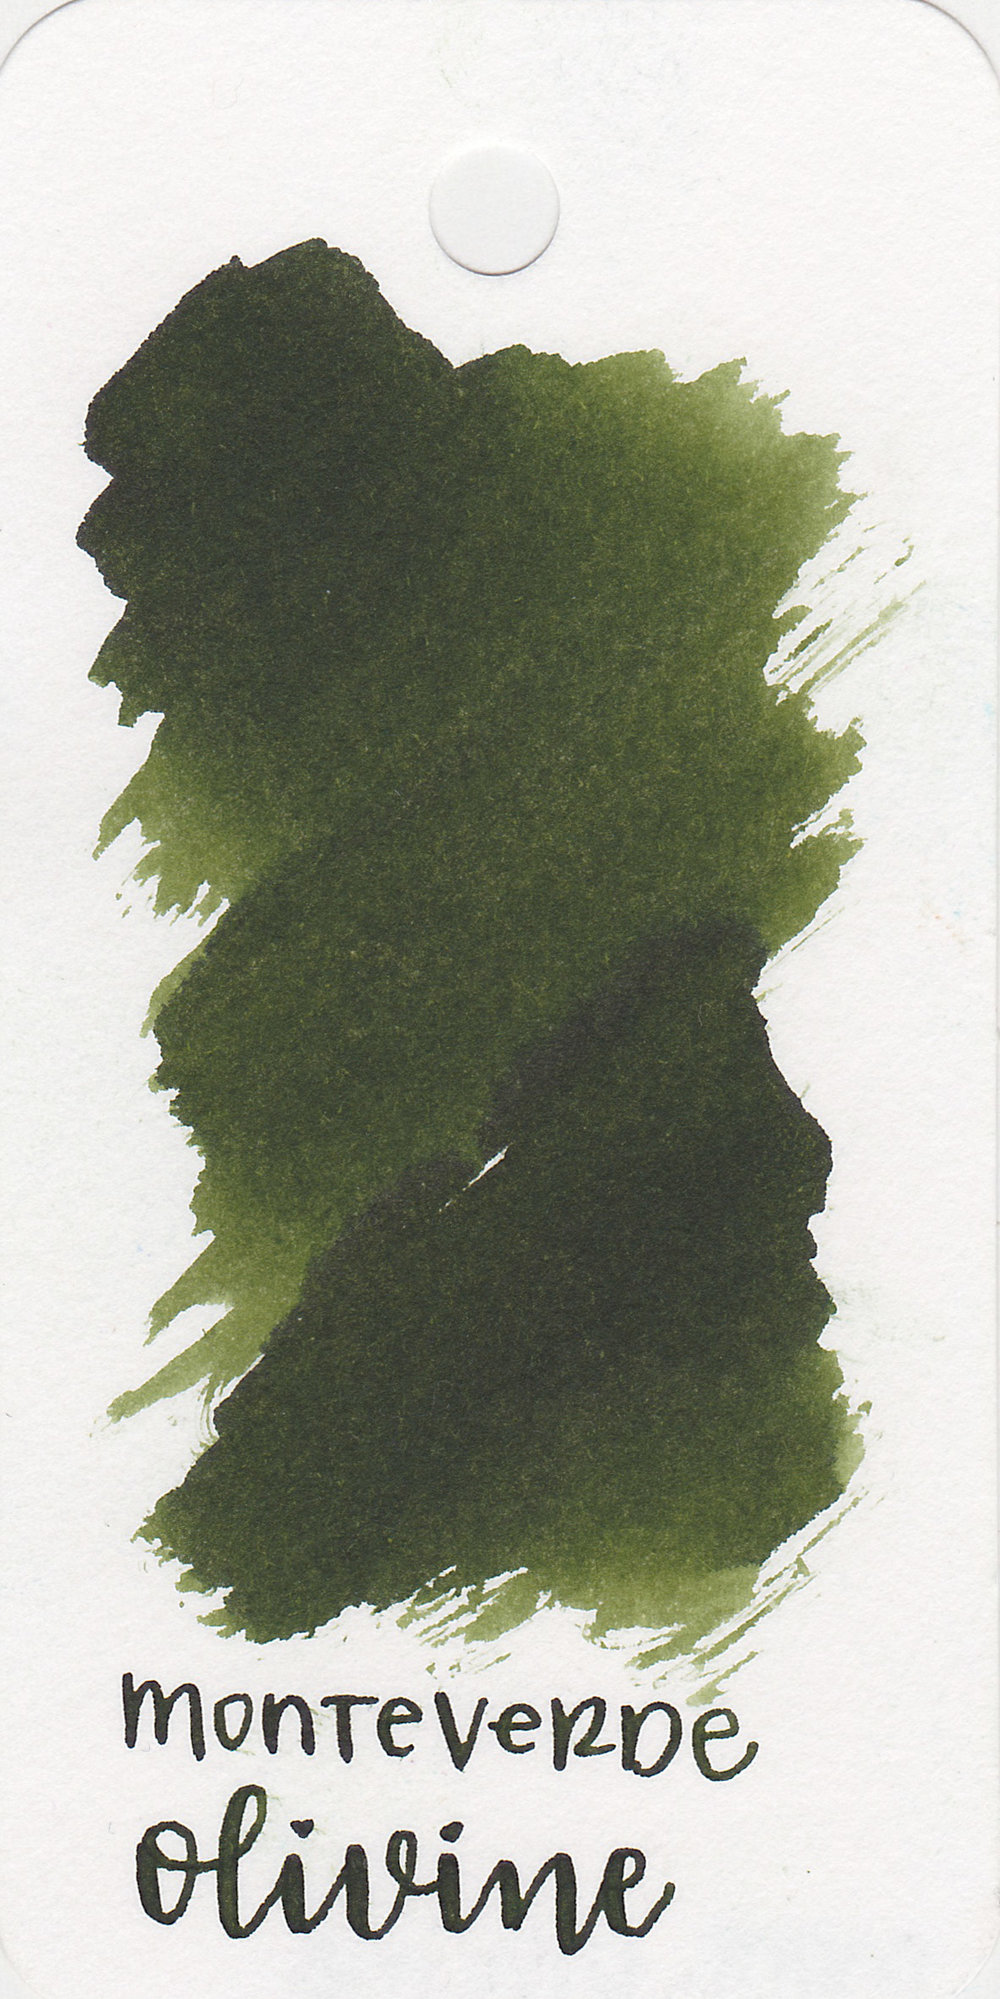 The color: - Olivine is a pretty olive green.